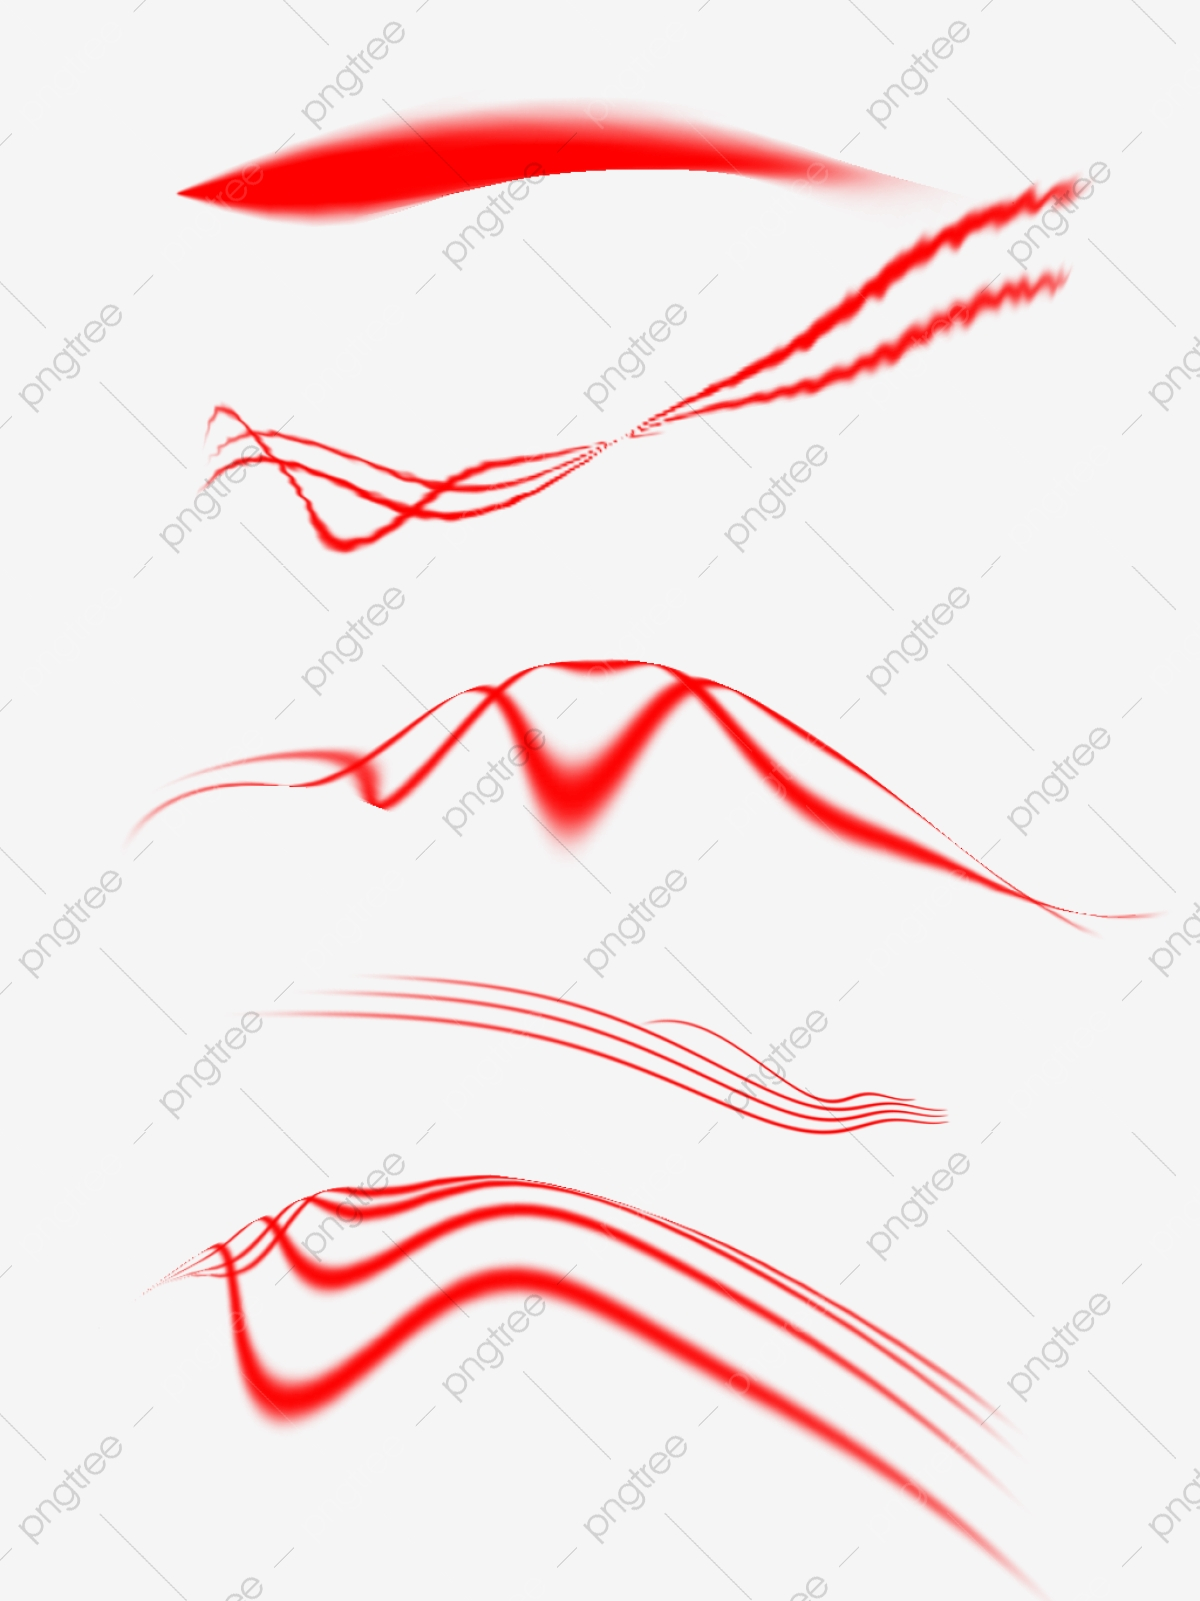 Red Effect Png : effect, Light, Effect,, Technology, Transparent, Image, Clipart, Download